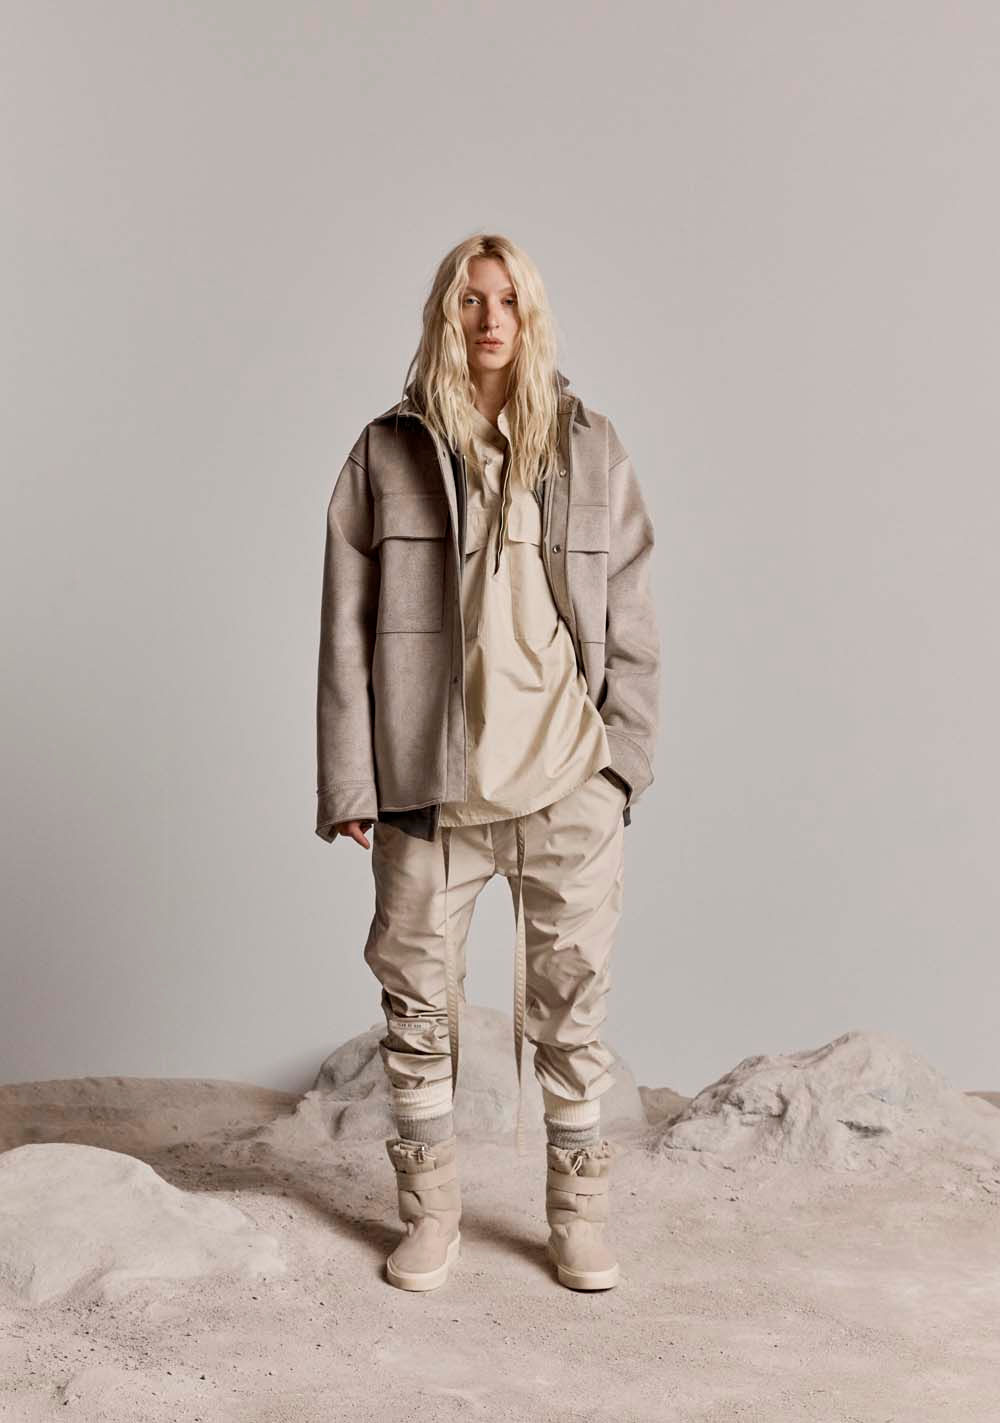 https_%2F%2Fhypebeast.com%2Fimage%2F2018%2F09%2Ffear-of-god-6-sixth-collection-jared-leto-nike-69.jpg